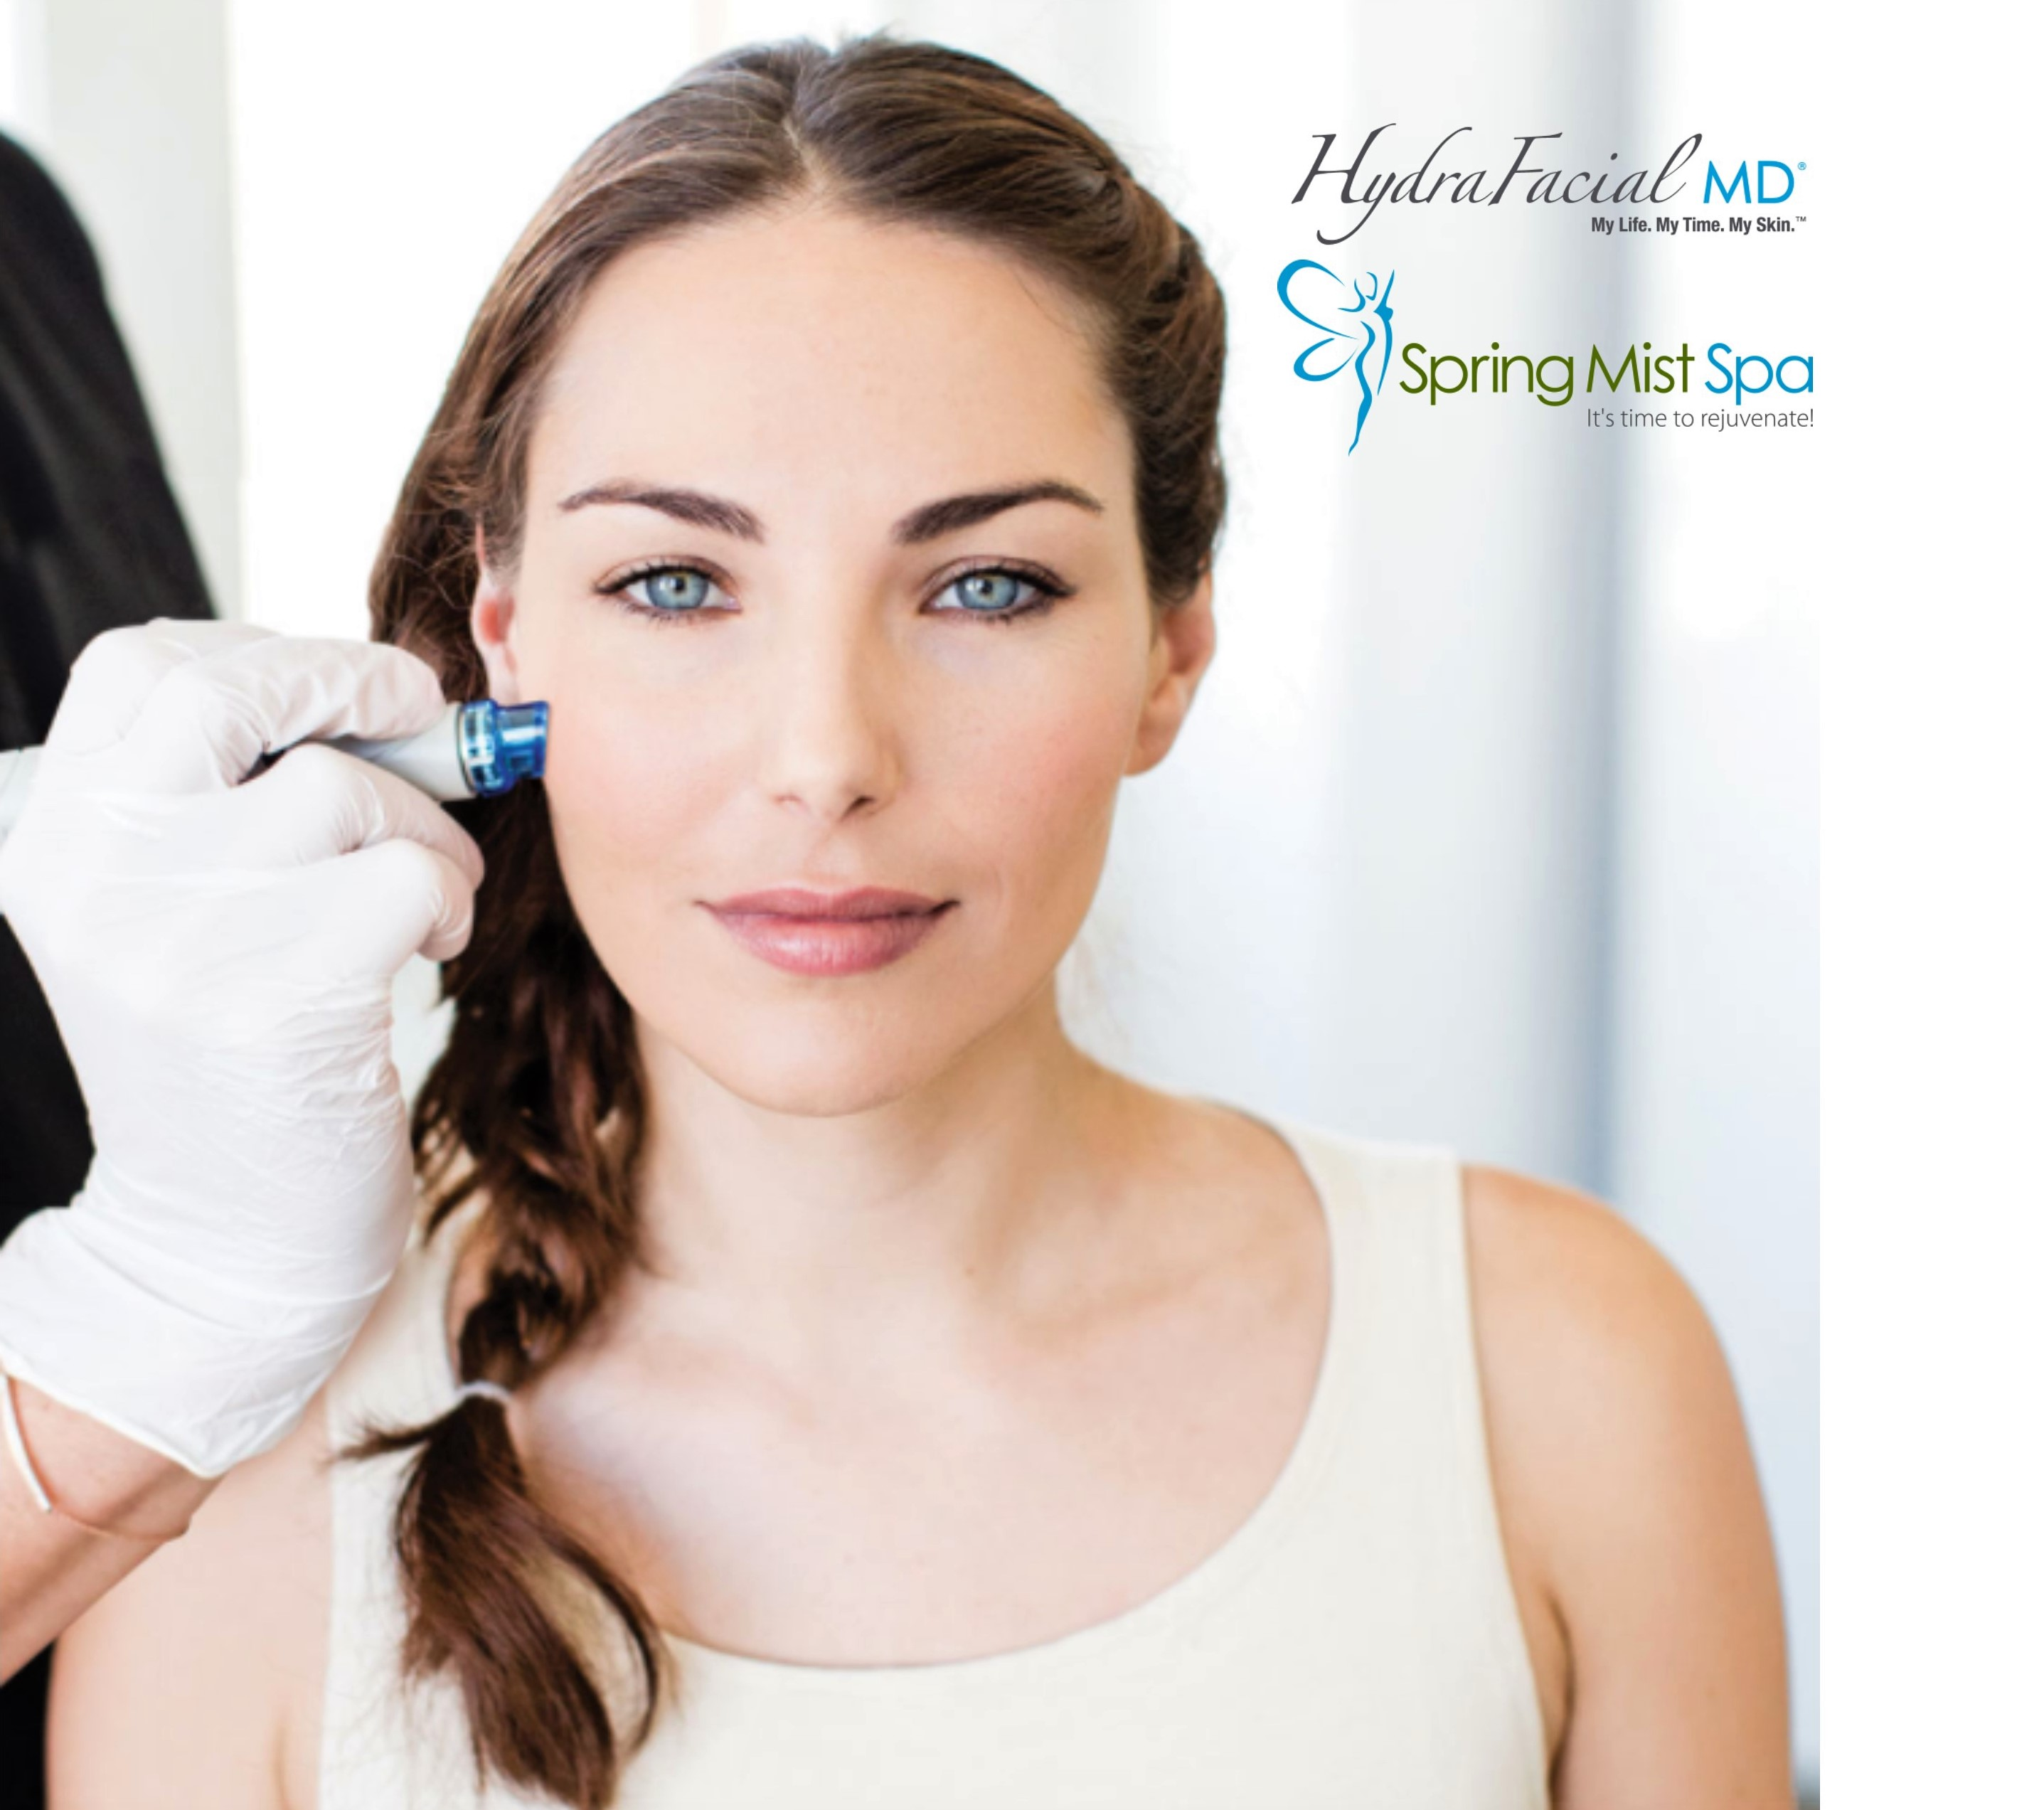 Spring Mist Spa Milton - Hydrafracial - 3 steps, 30 minutes to the best skin of your life.